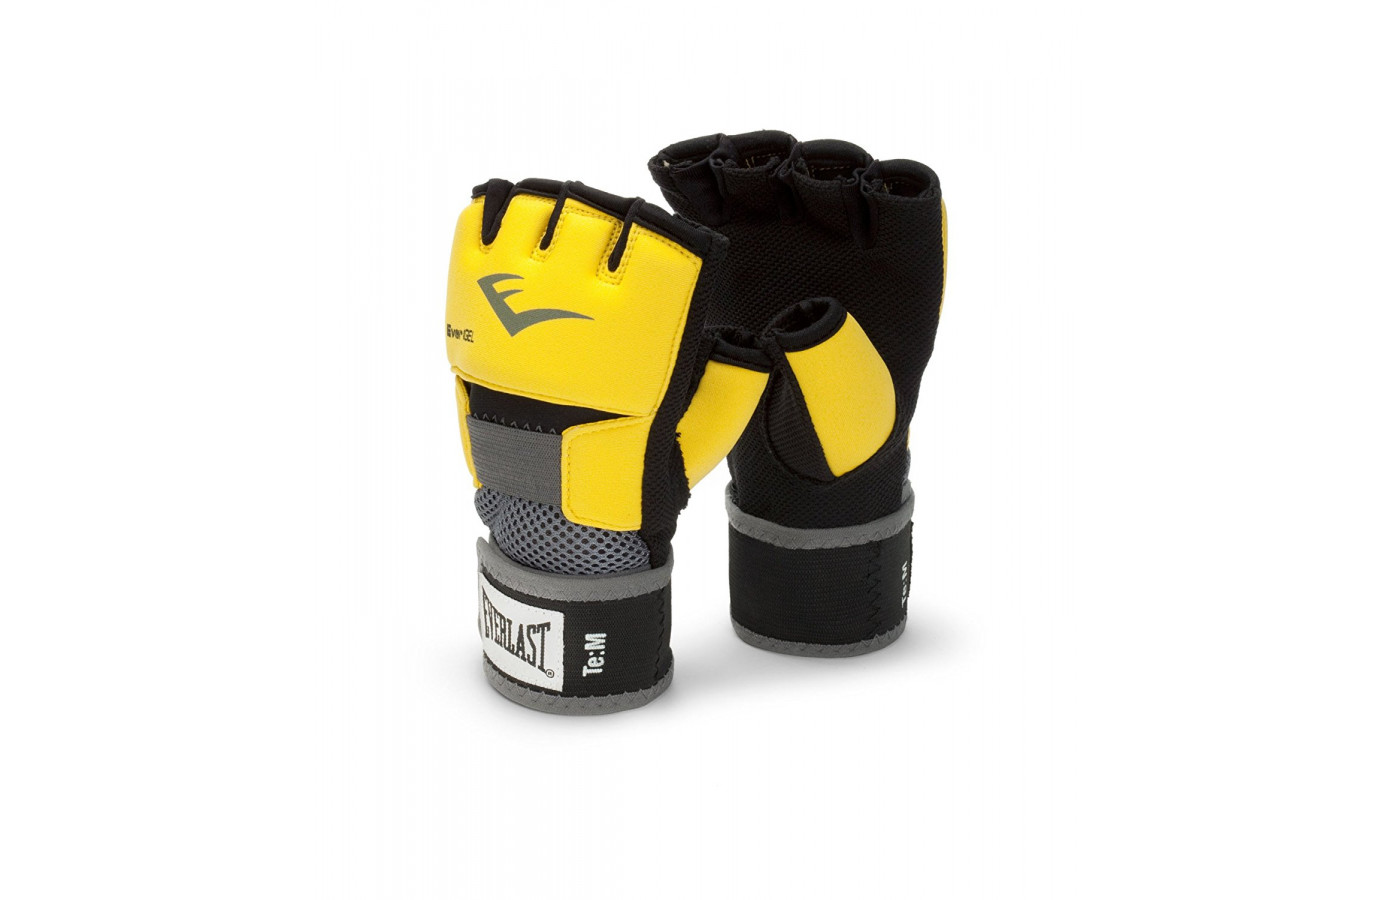 everlast gel wraps black and yellow